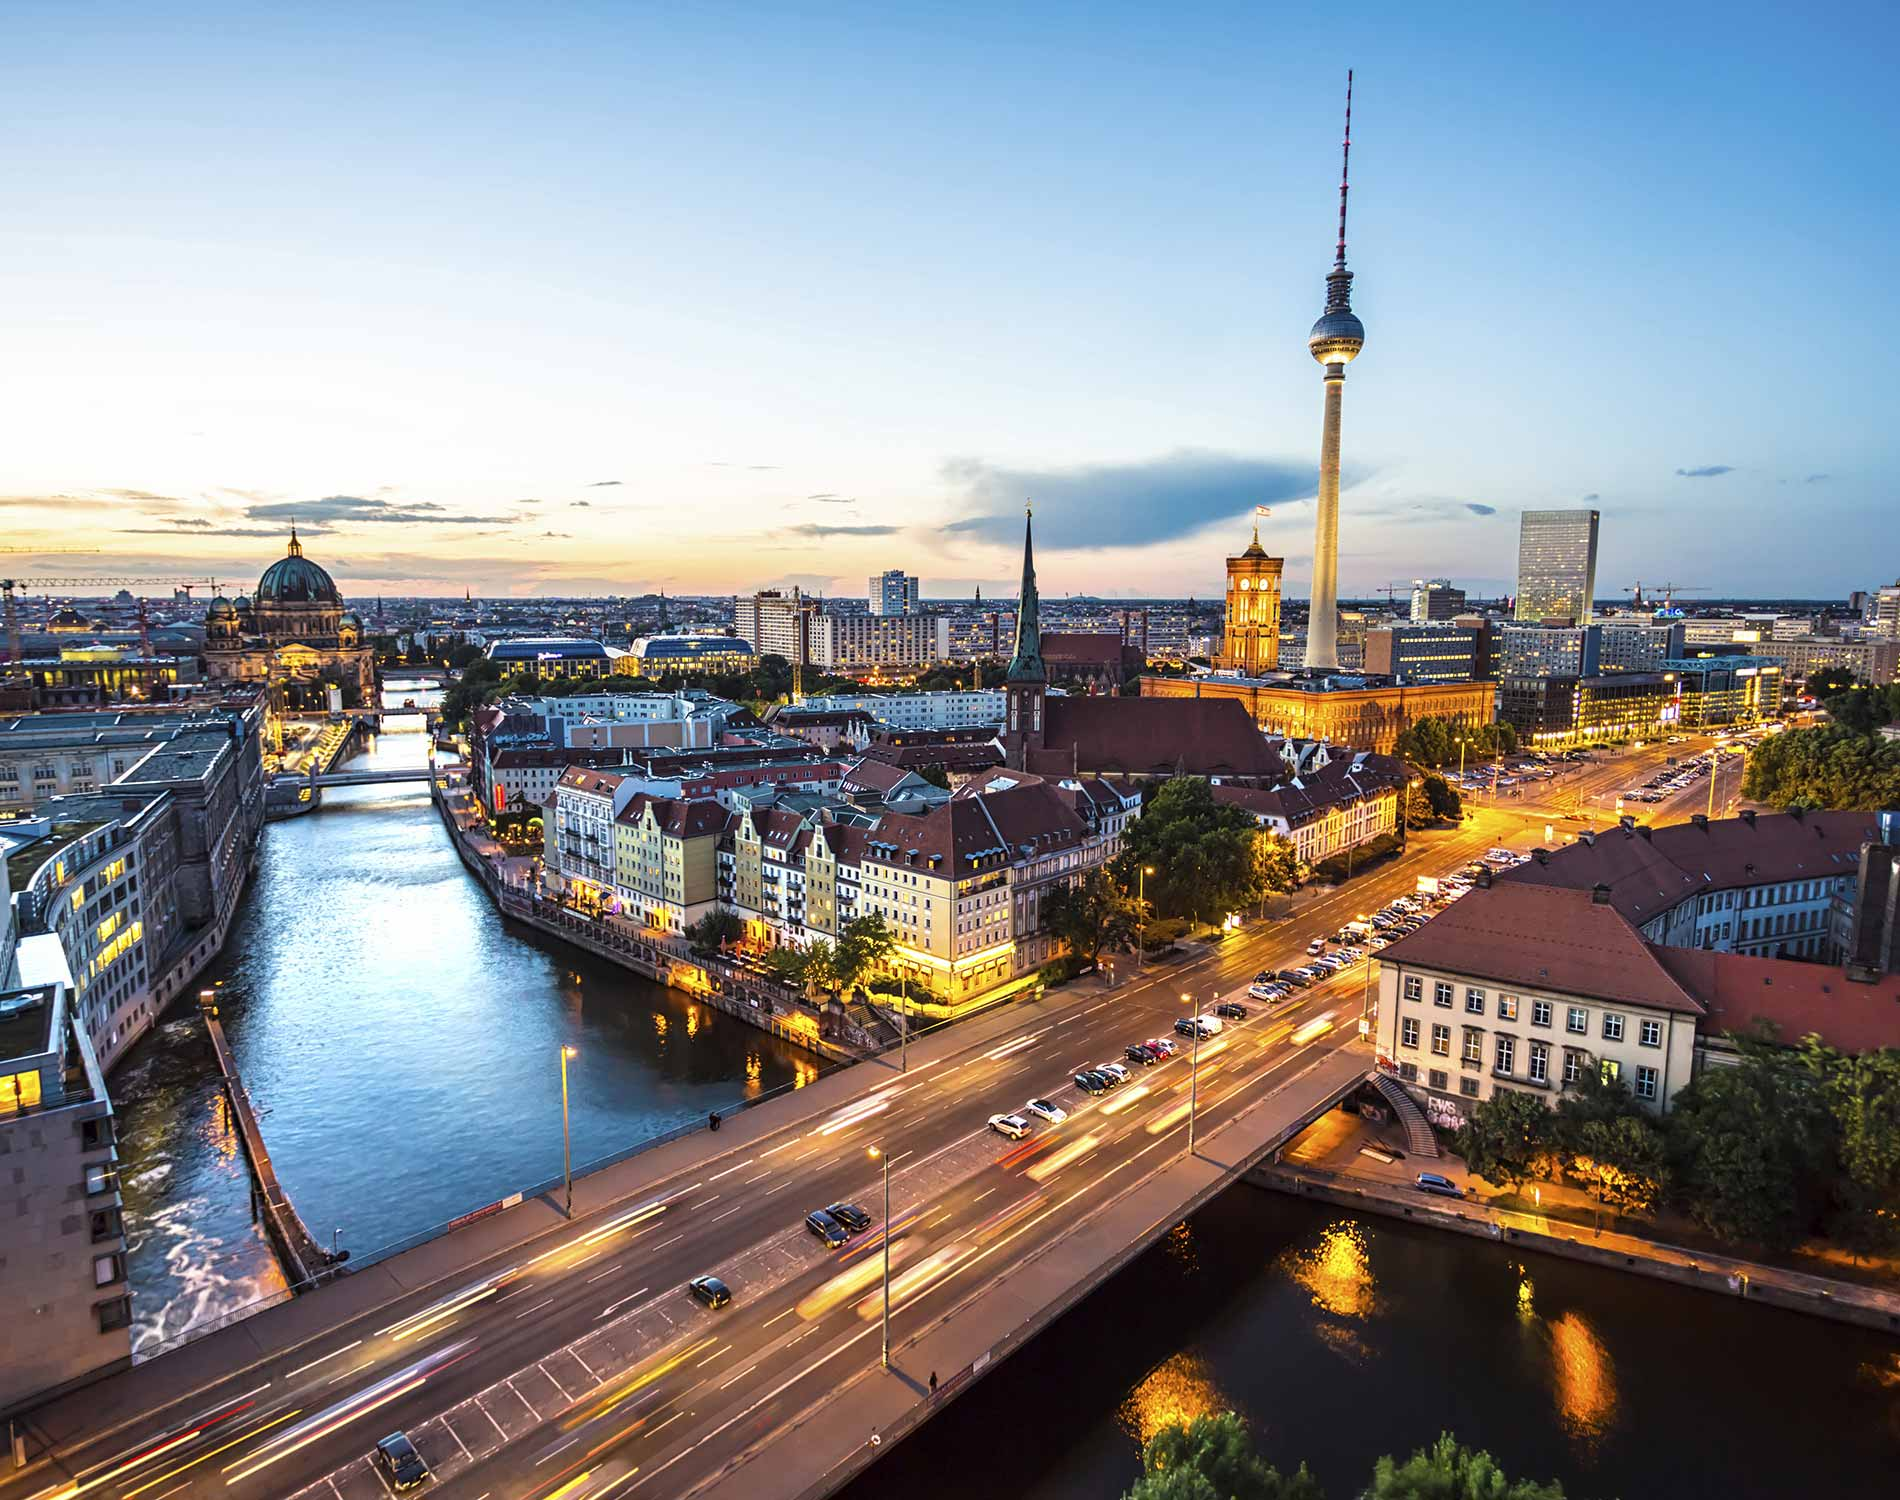 /-/media/images/website/background-images/offices/berlin/berlin_skyline.ashx